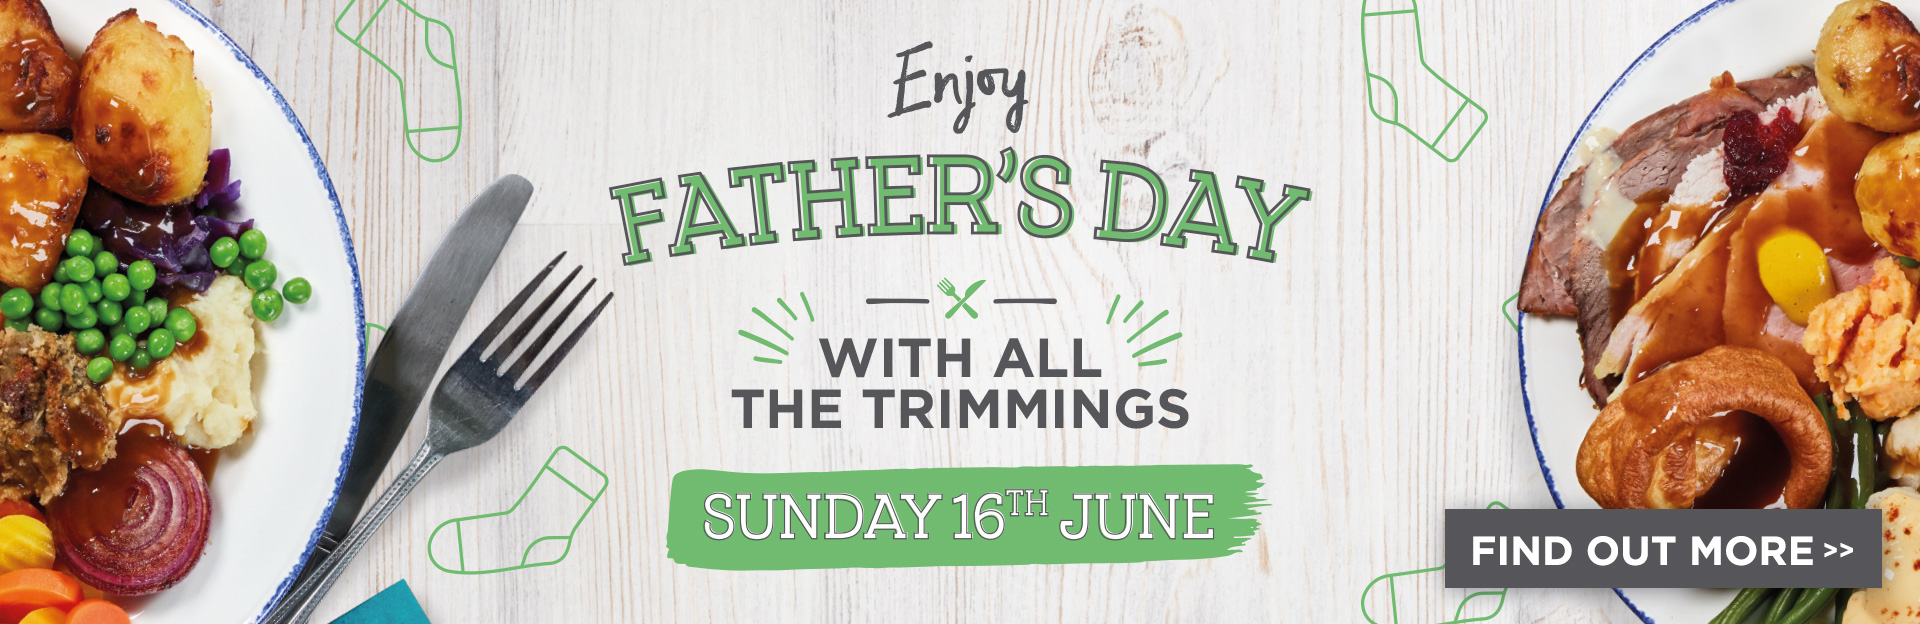 Father's Day at The Bells of St Marys